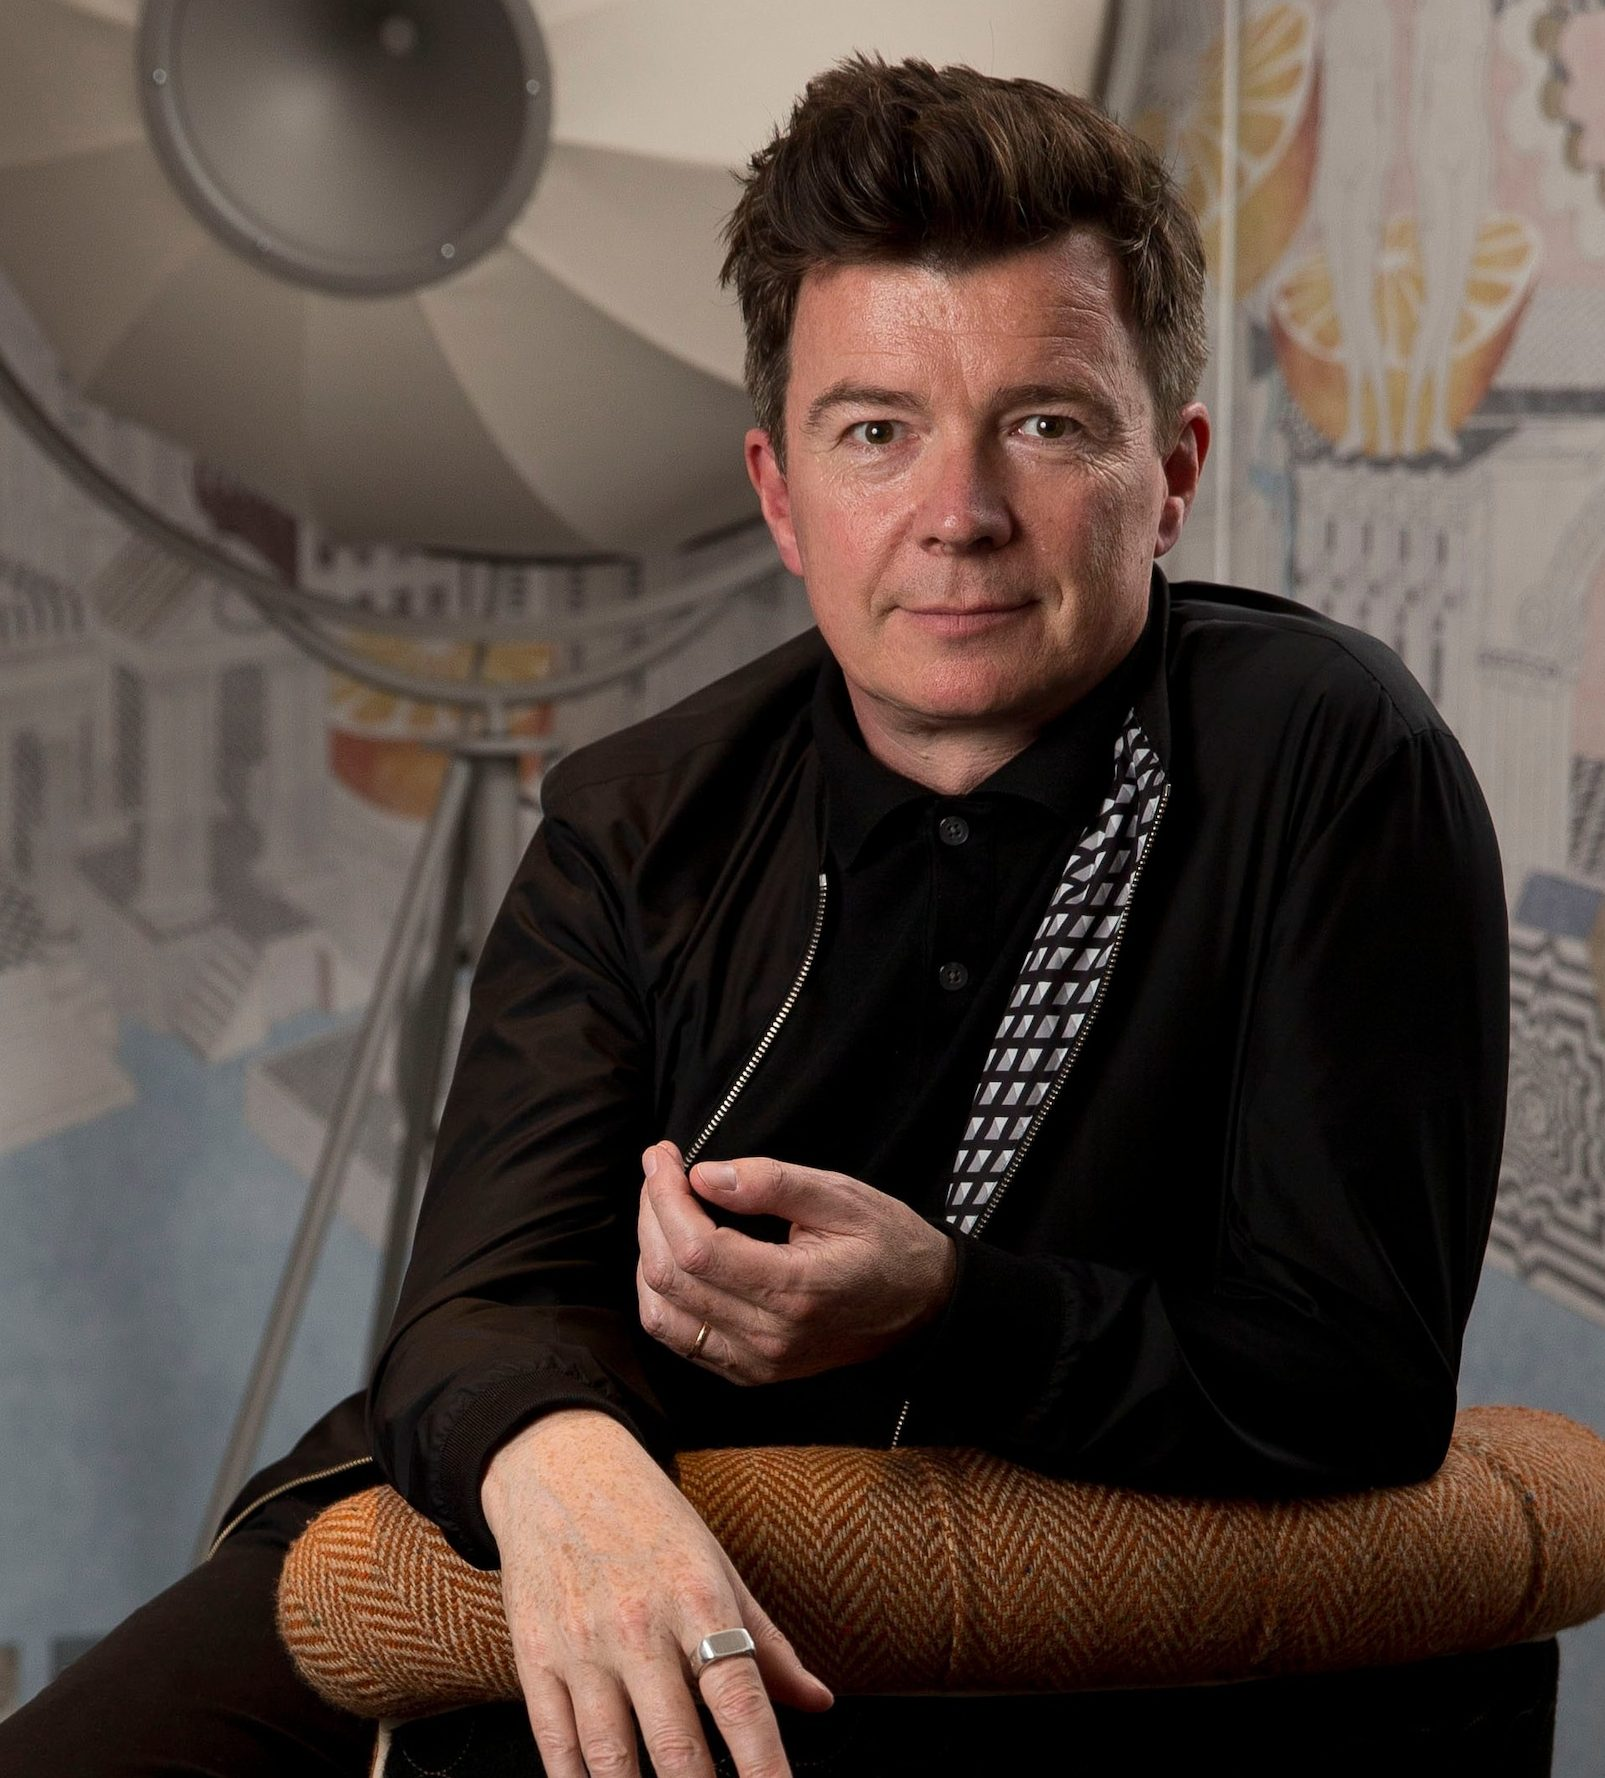 RickAstley trans NvBQzQNjv4BqthD Iqv8BRmIZIzYBGWvriUvG1VjmqmGsf10Hf8vKfc e1585729015490 Rick Astley Will Play Free Concert For NHS And Emergency Services Workers